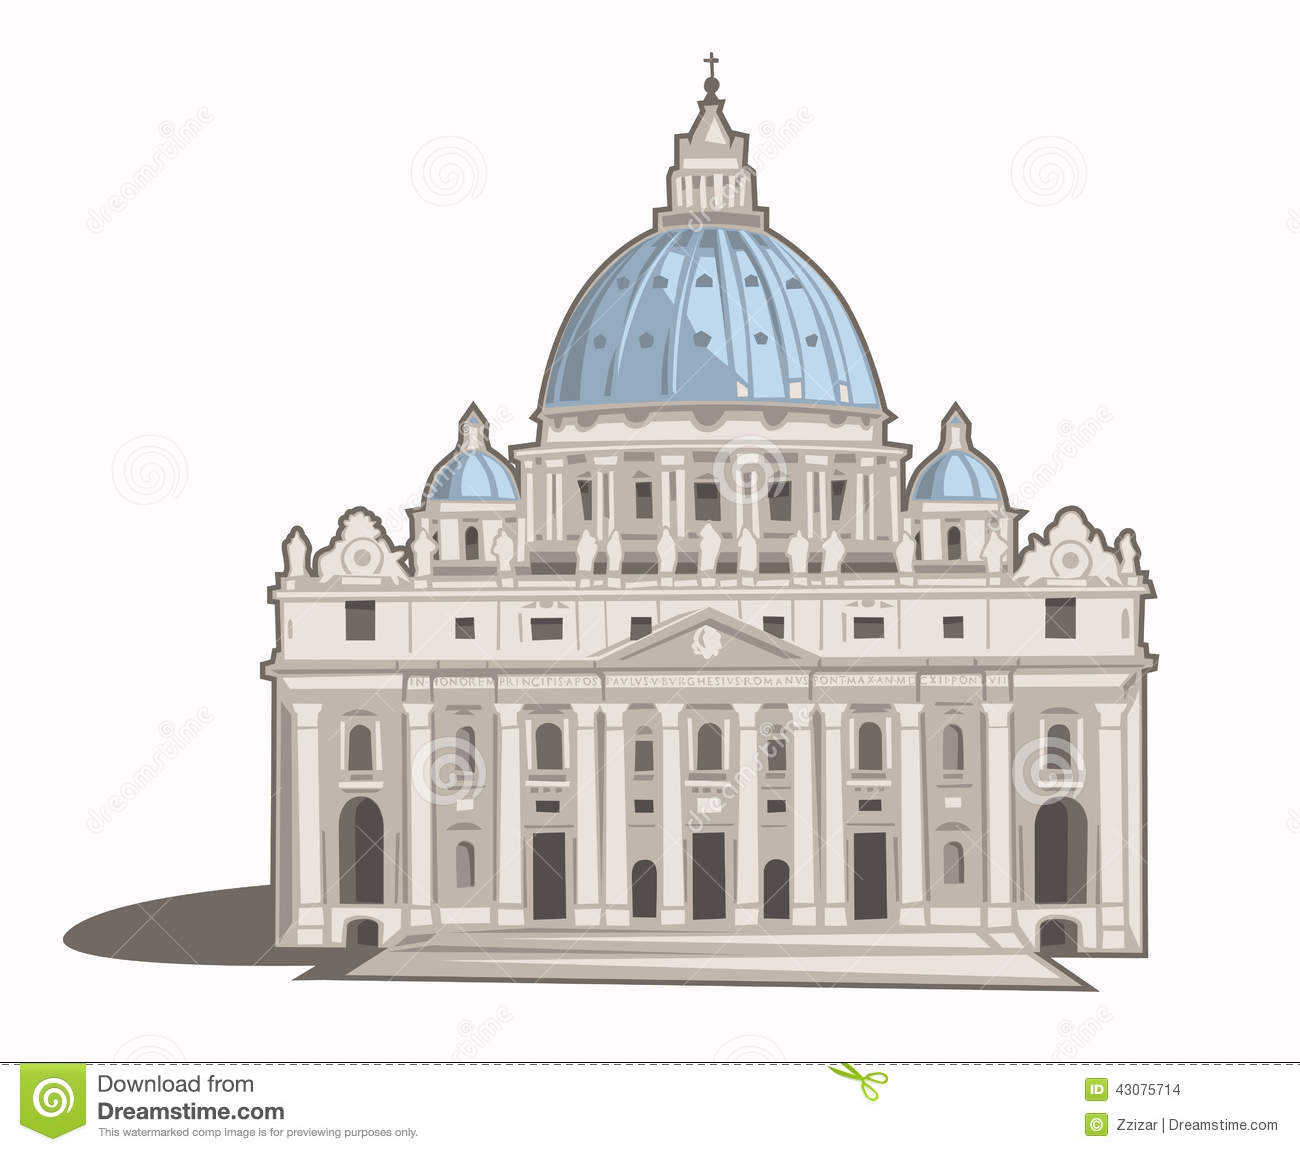 St. Peter's Basilica Stock Photo - Image: 43075714